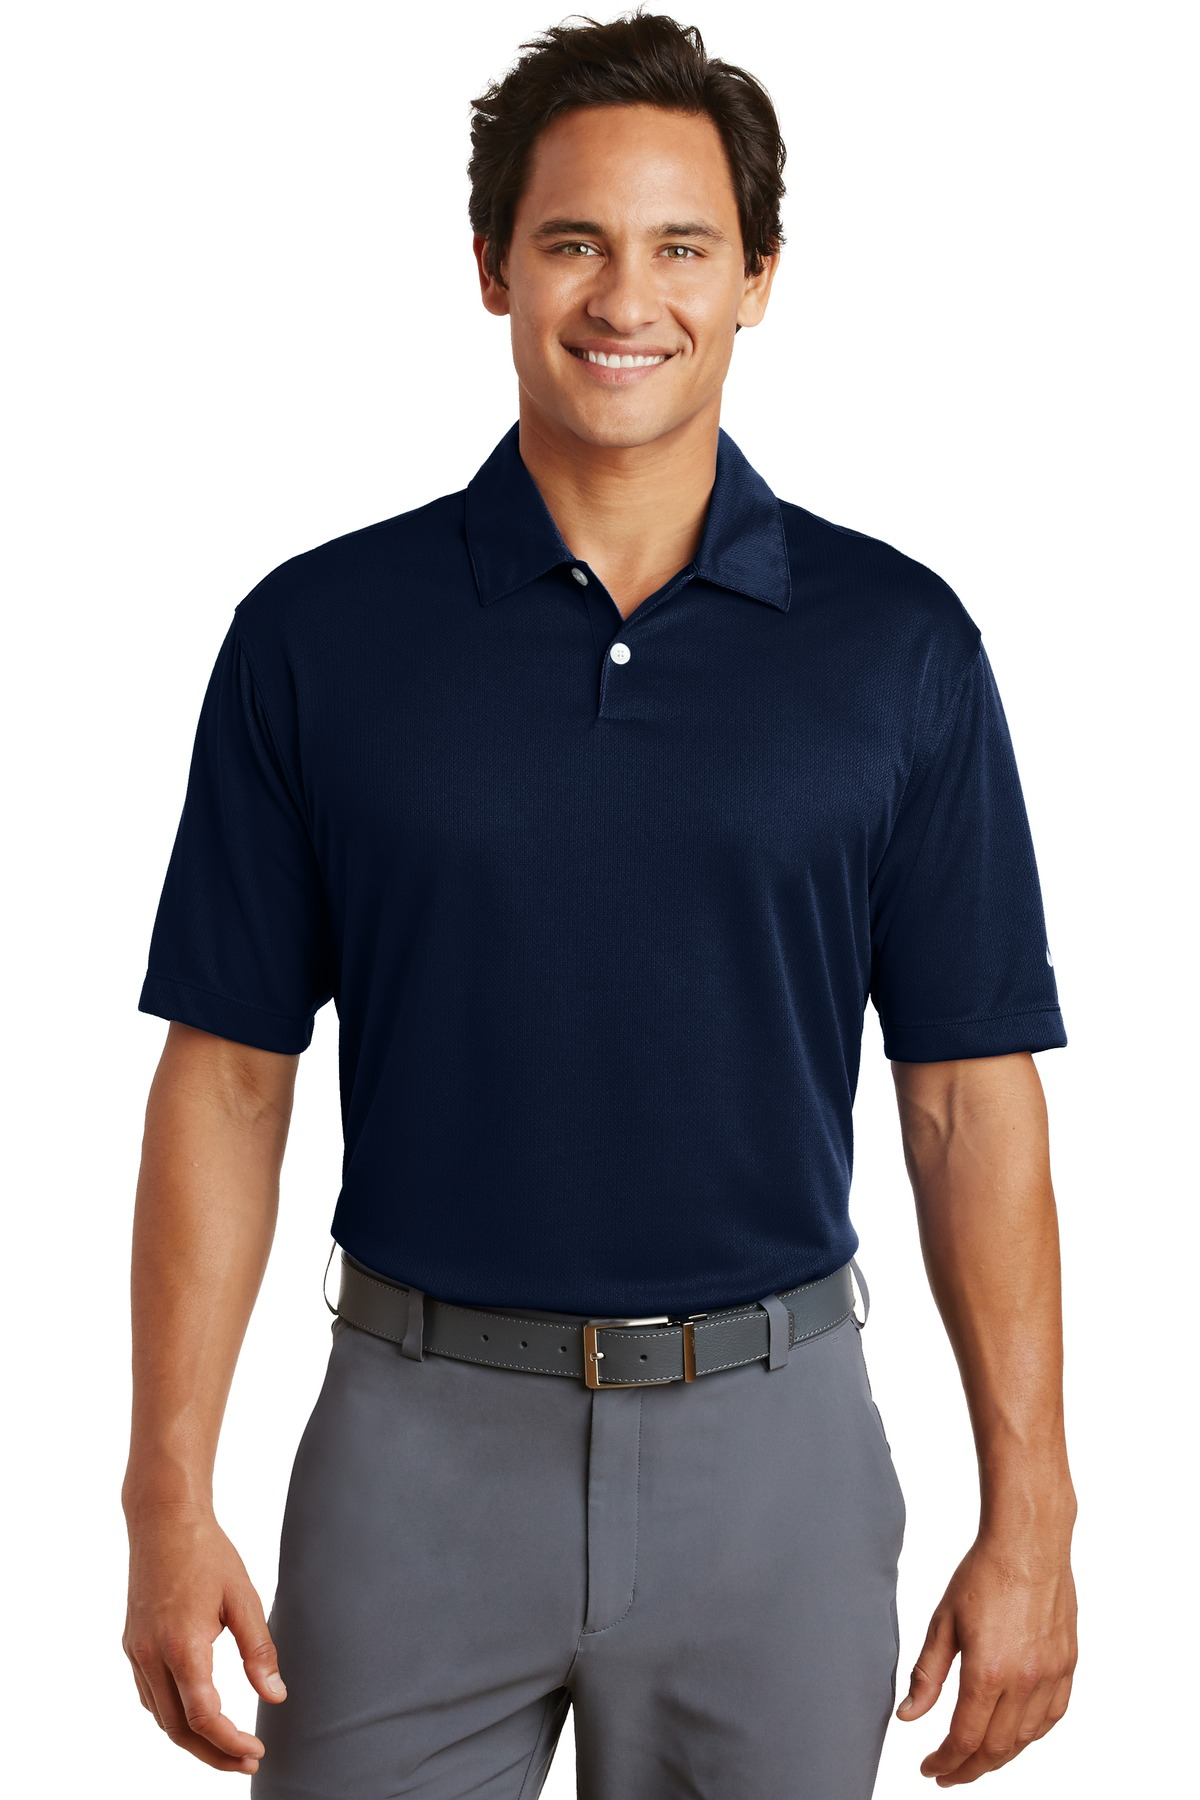 Nike Dri-FIT Pebble Texture Polo. 373749 - Midnight Navy